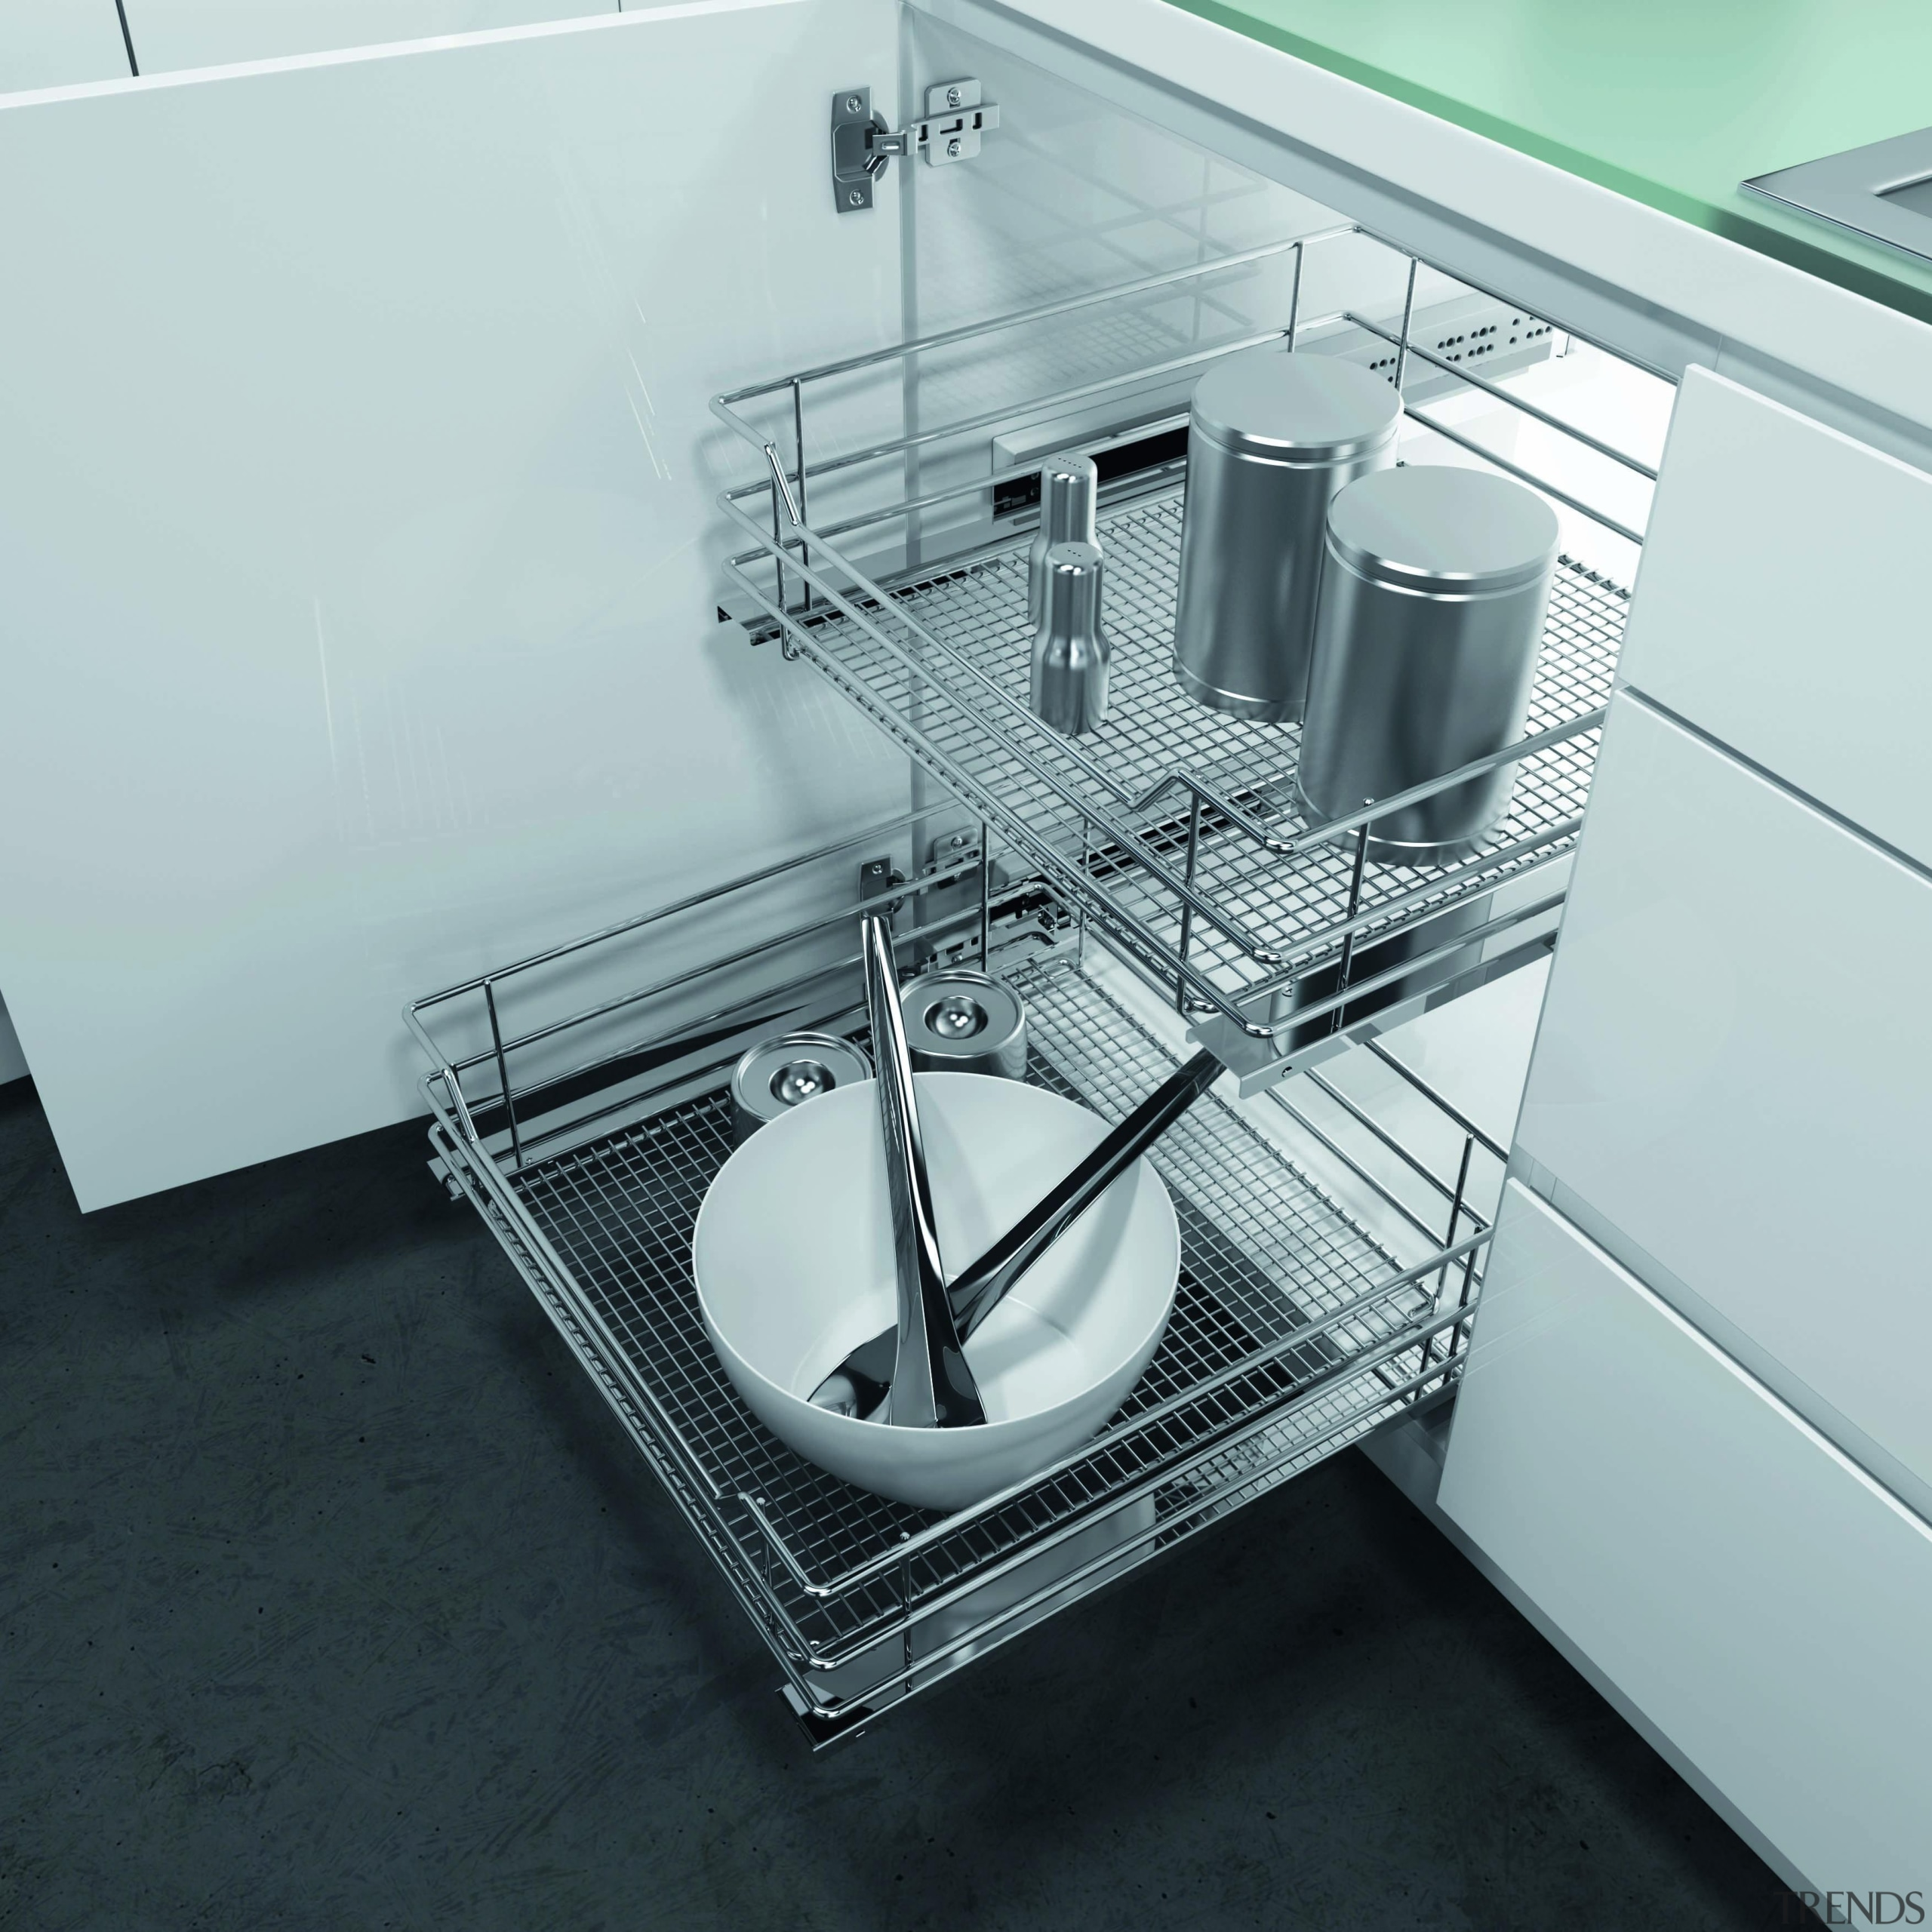 Get organised with the immensely practical, clearly arranged plumbing fixture, product, product design, sink, small appliance, steel, tap, gray, black